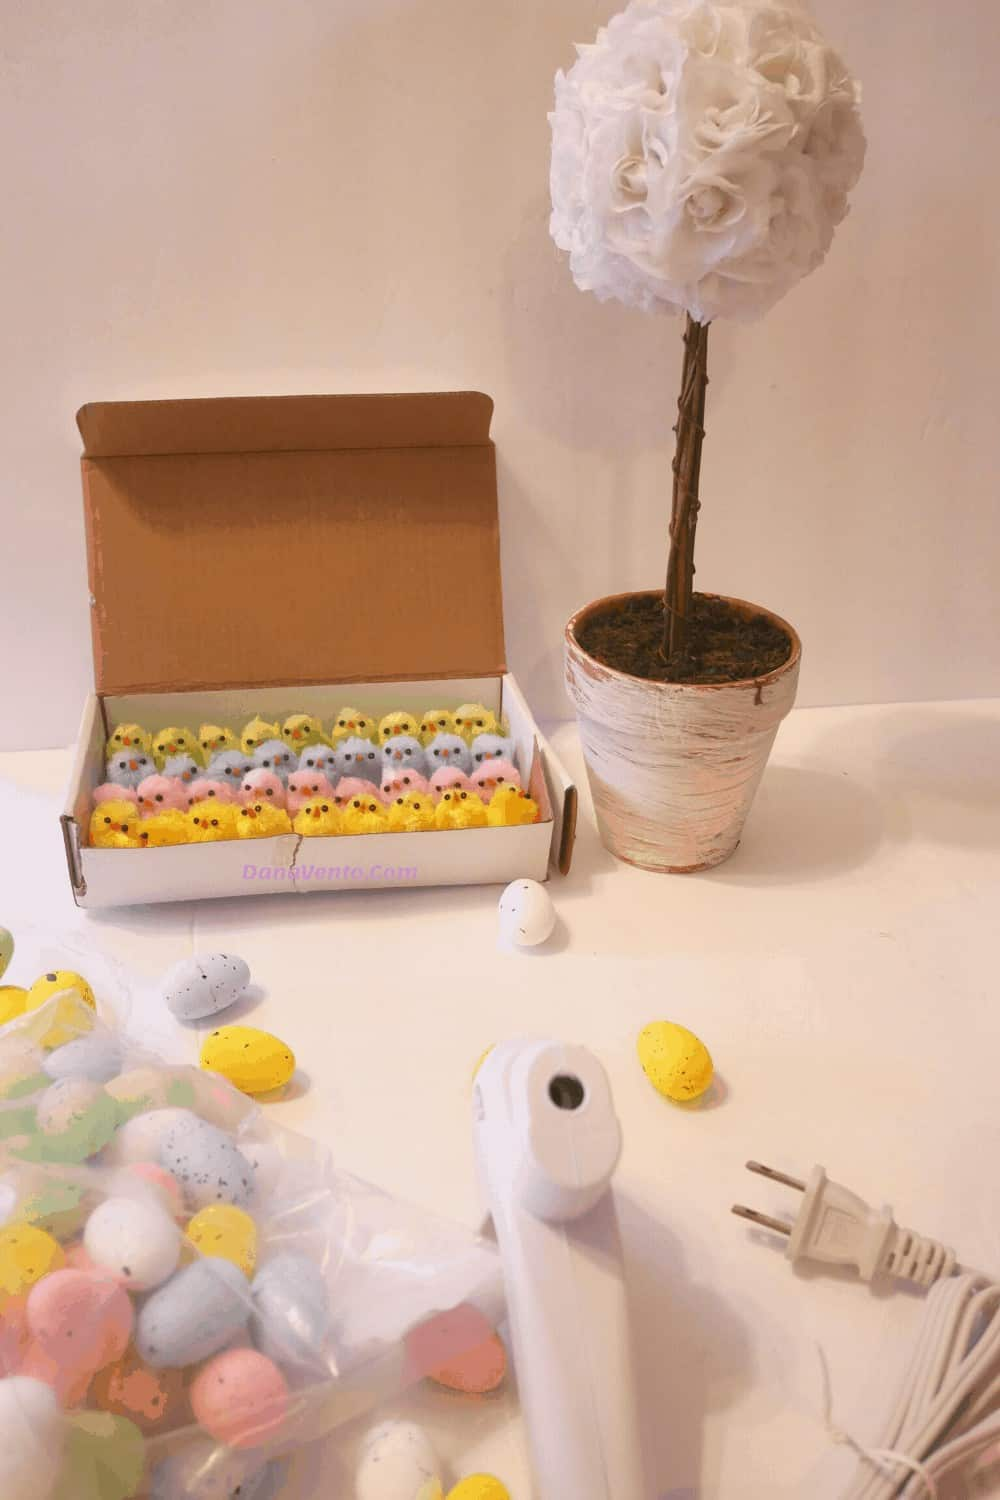 Chicks in Carton for Topiary